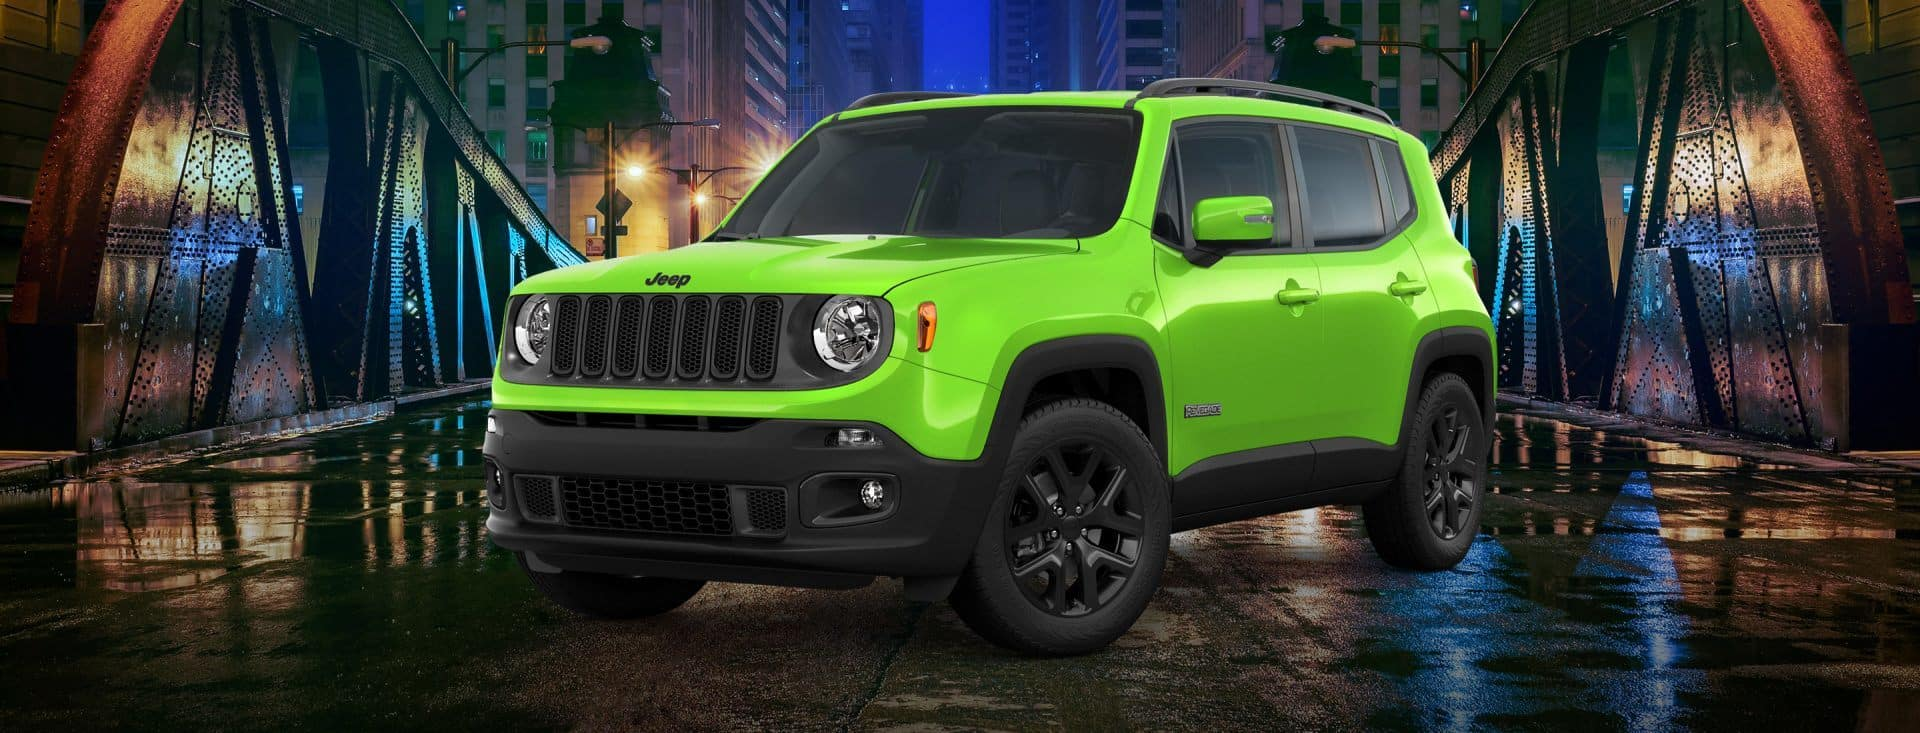 Jeep Cherokee Altitude >> Dempsey Dodge Chrysler Jeep Ram of Plano, IL